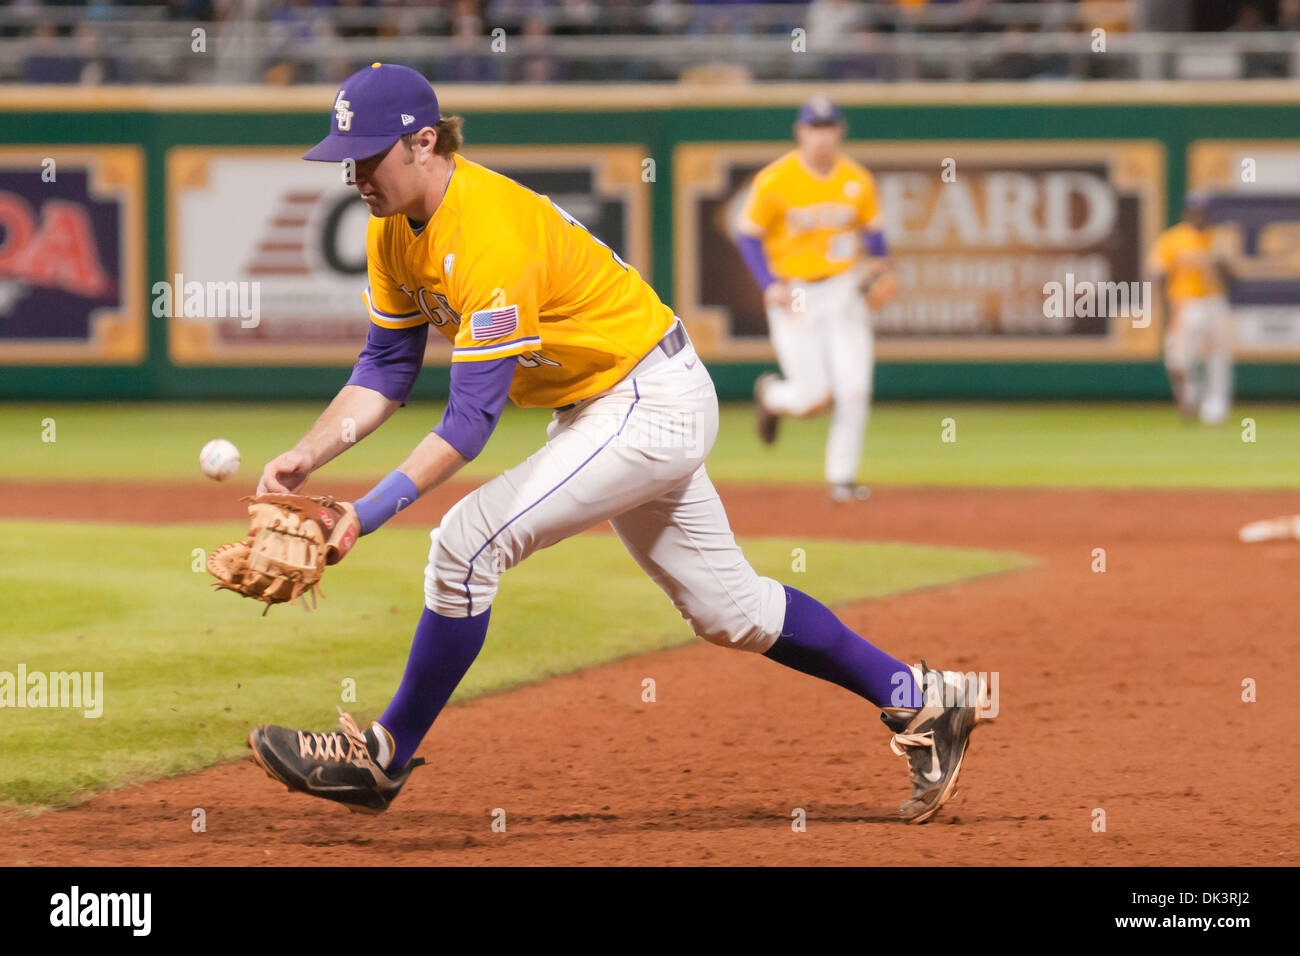 Mar. 11, 2011 - Baton Rouge, Louisiana, United States of America - LSU Tiger first baseman Alex Edward (13) contains a tricky grounder early in the game. LSU defeated Cal State Fullerton 7-6. (Credit Image: © Joseph Bellamy/Southcreek Global/ZUMAPRESS.com) - Stock Image